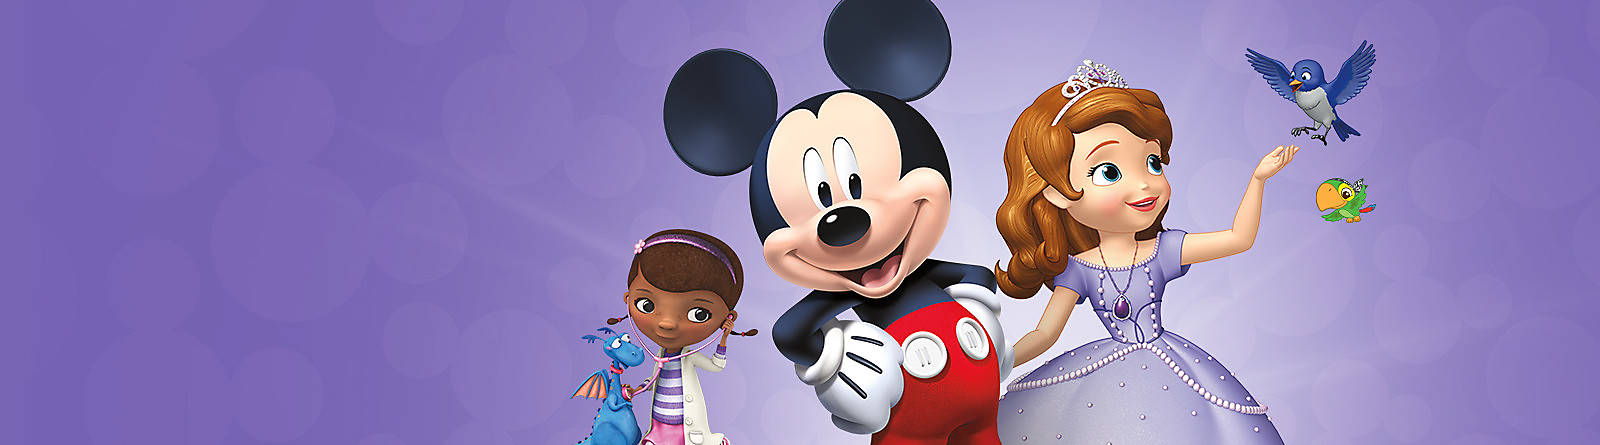 Disney Junior Discover a range of exclusive Disney Junior merchandise including soft toys, figurines, clothing, stationery and more